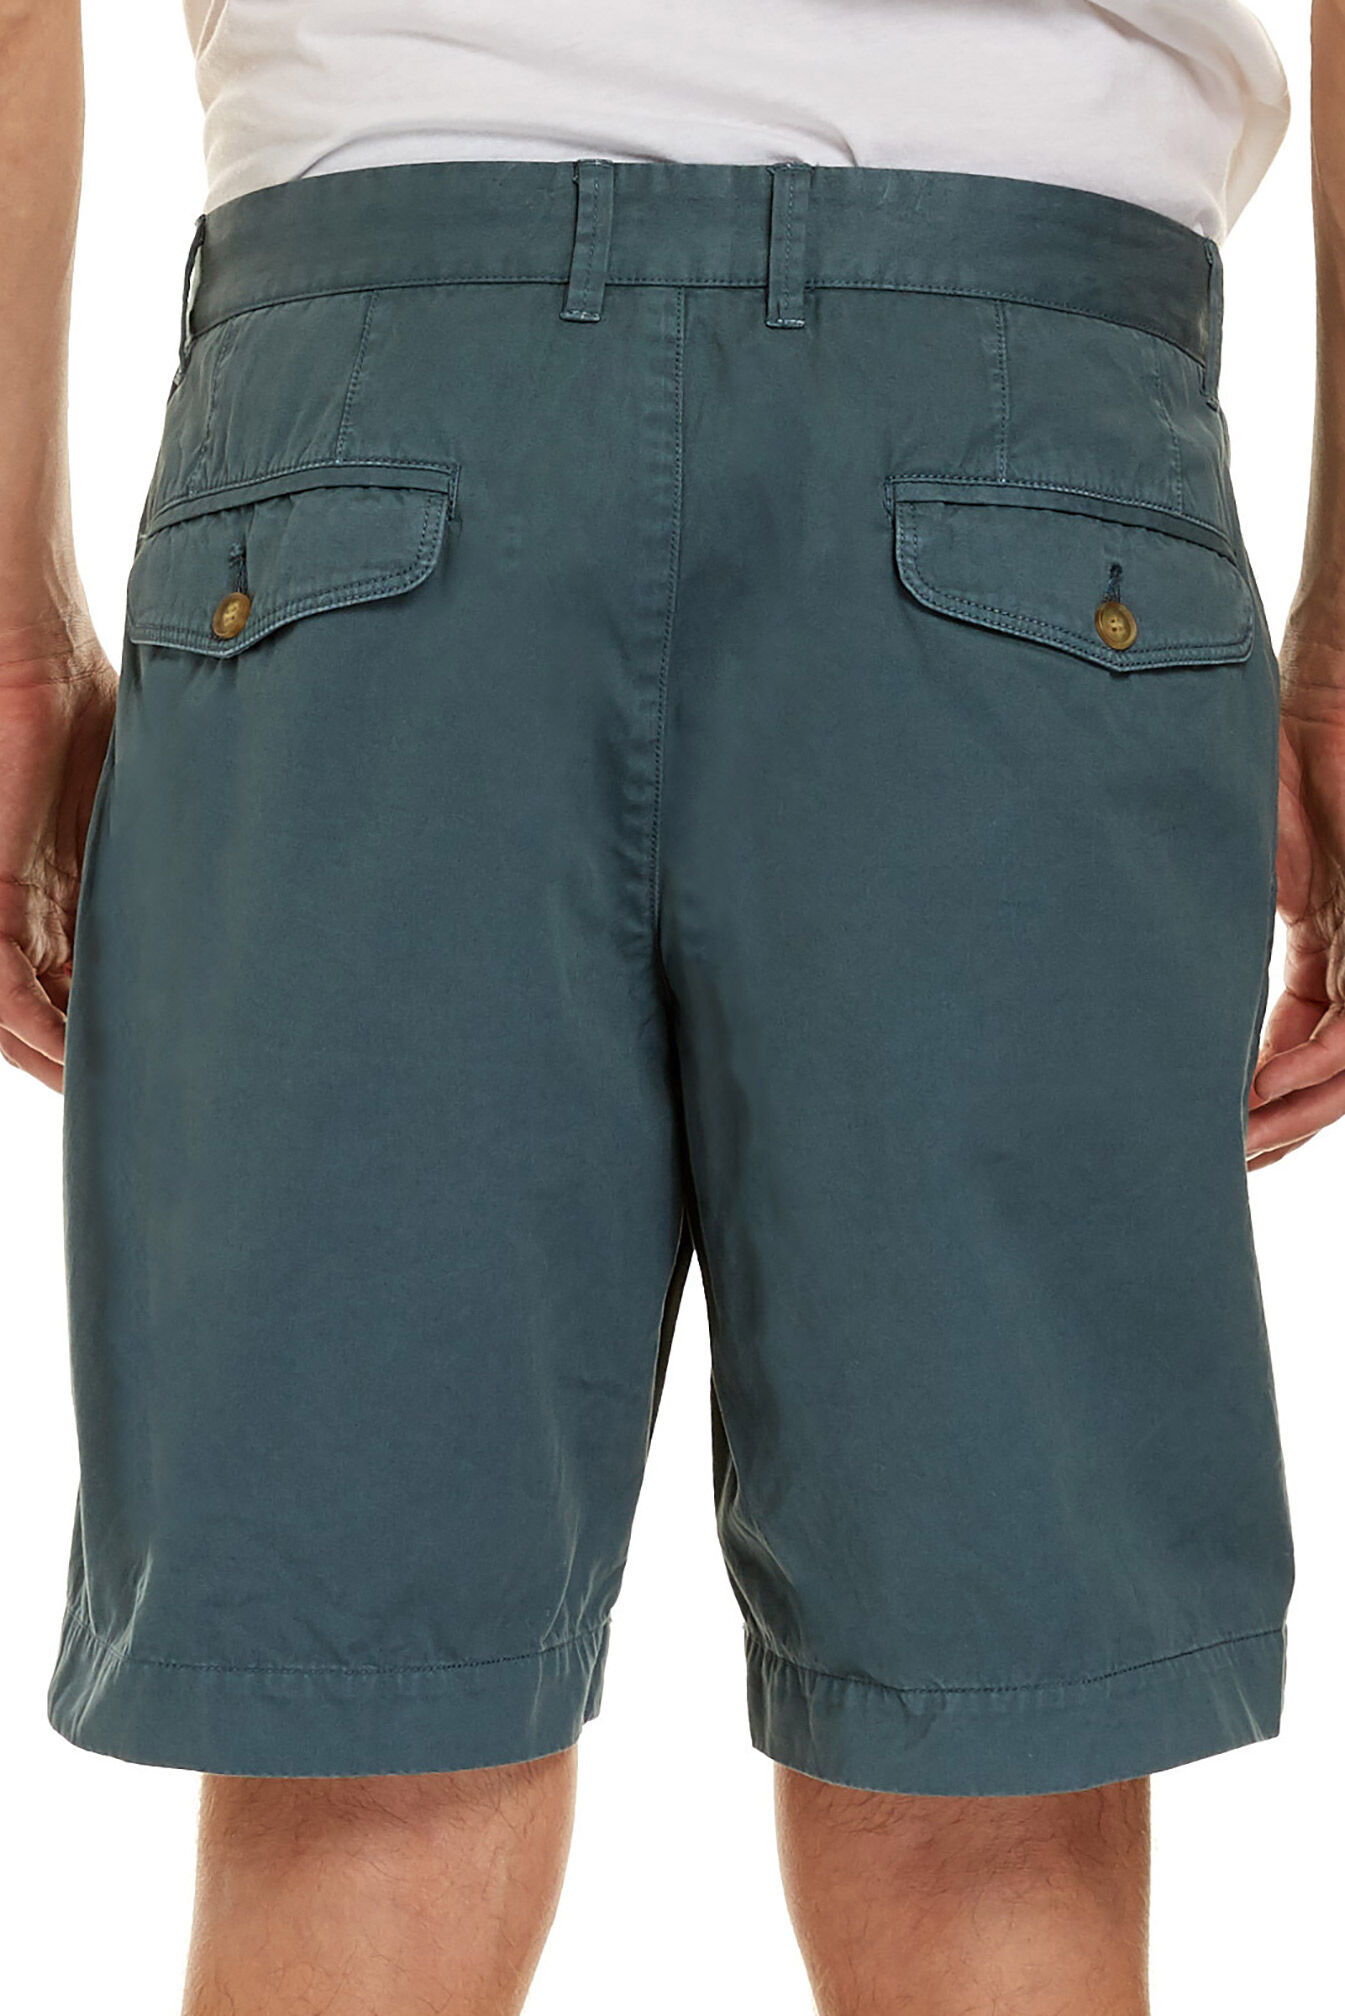 Rated 5 out of 5 by Dad4Two from Great shorts. Highly recommended I have had these shorts for over a month and I love them! Perfect length, fit, comfort. If you don't want the over-the-knee shorts like the .